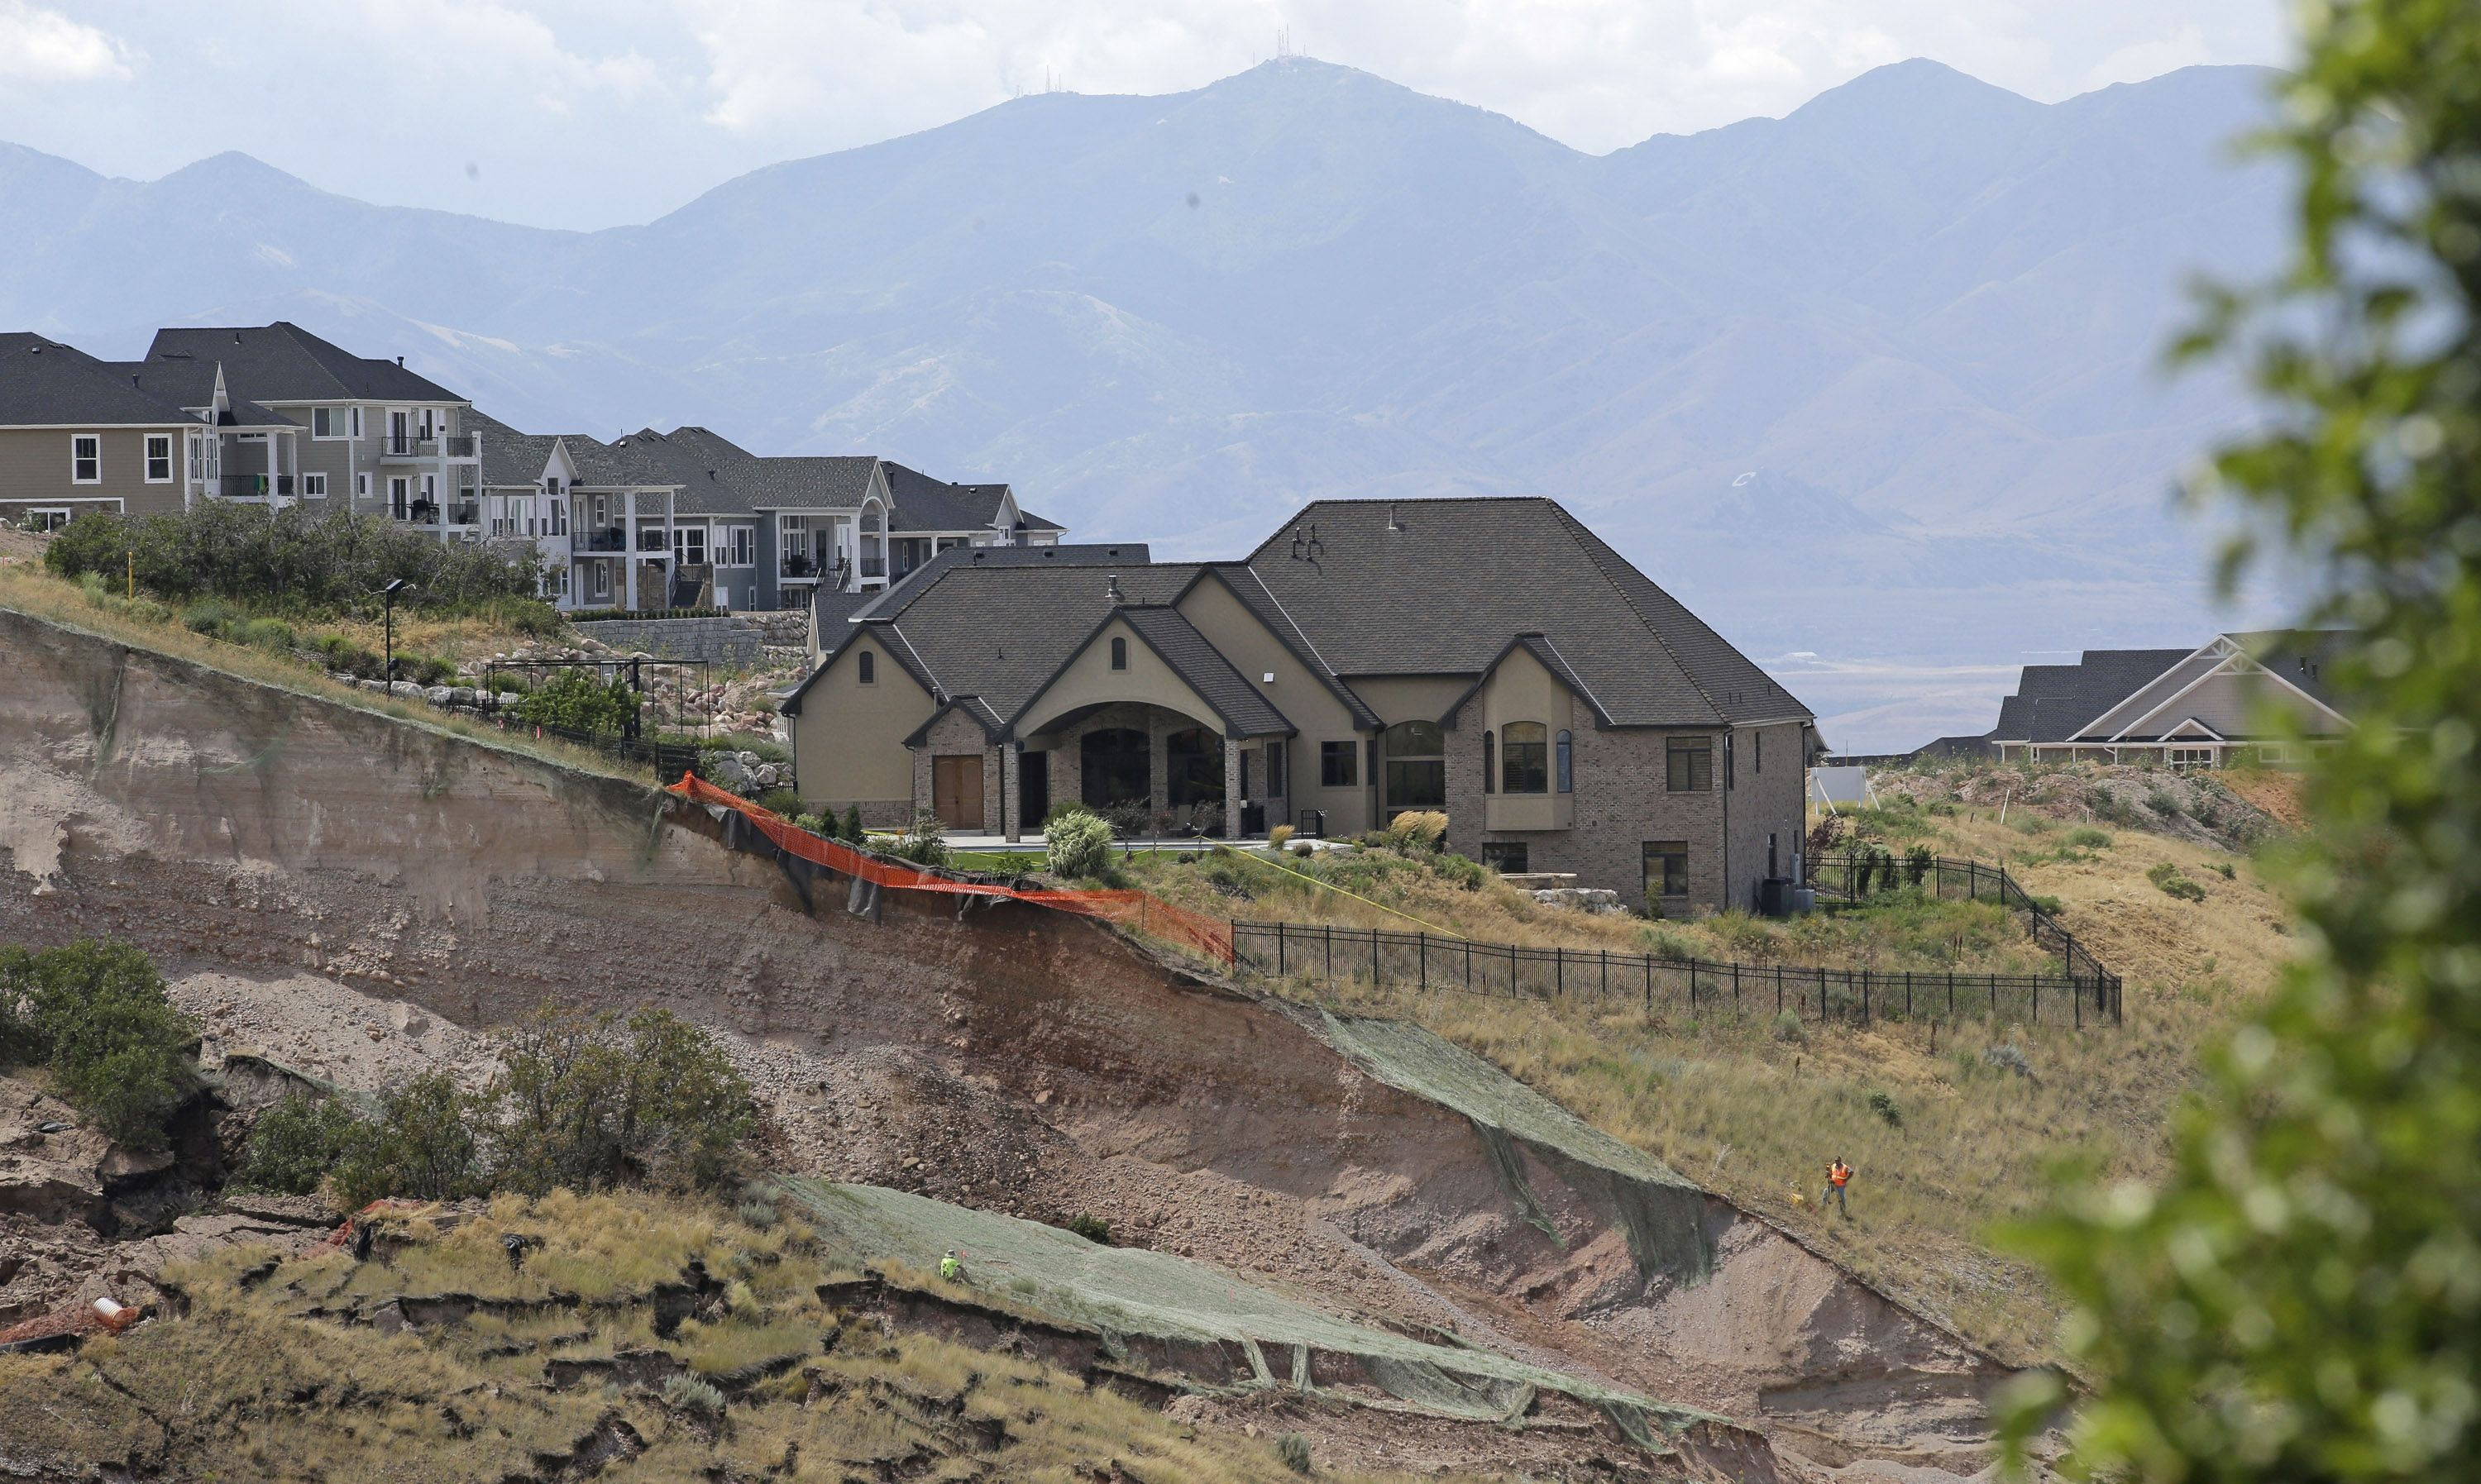 Landslide in North Salt Lake, Utah in 2014